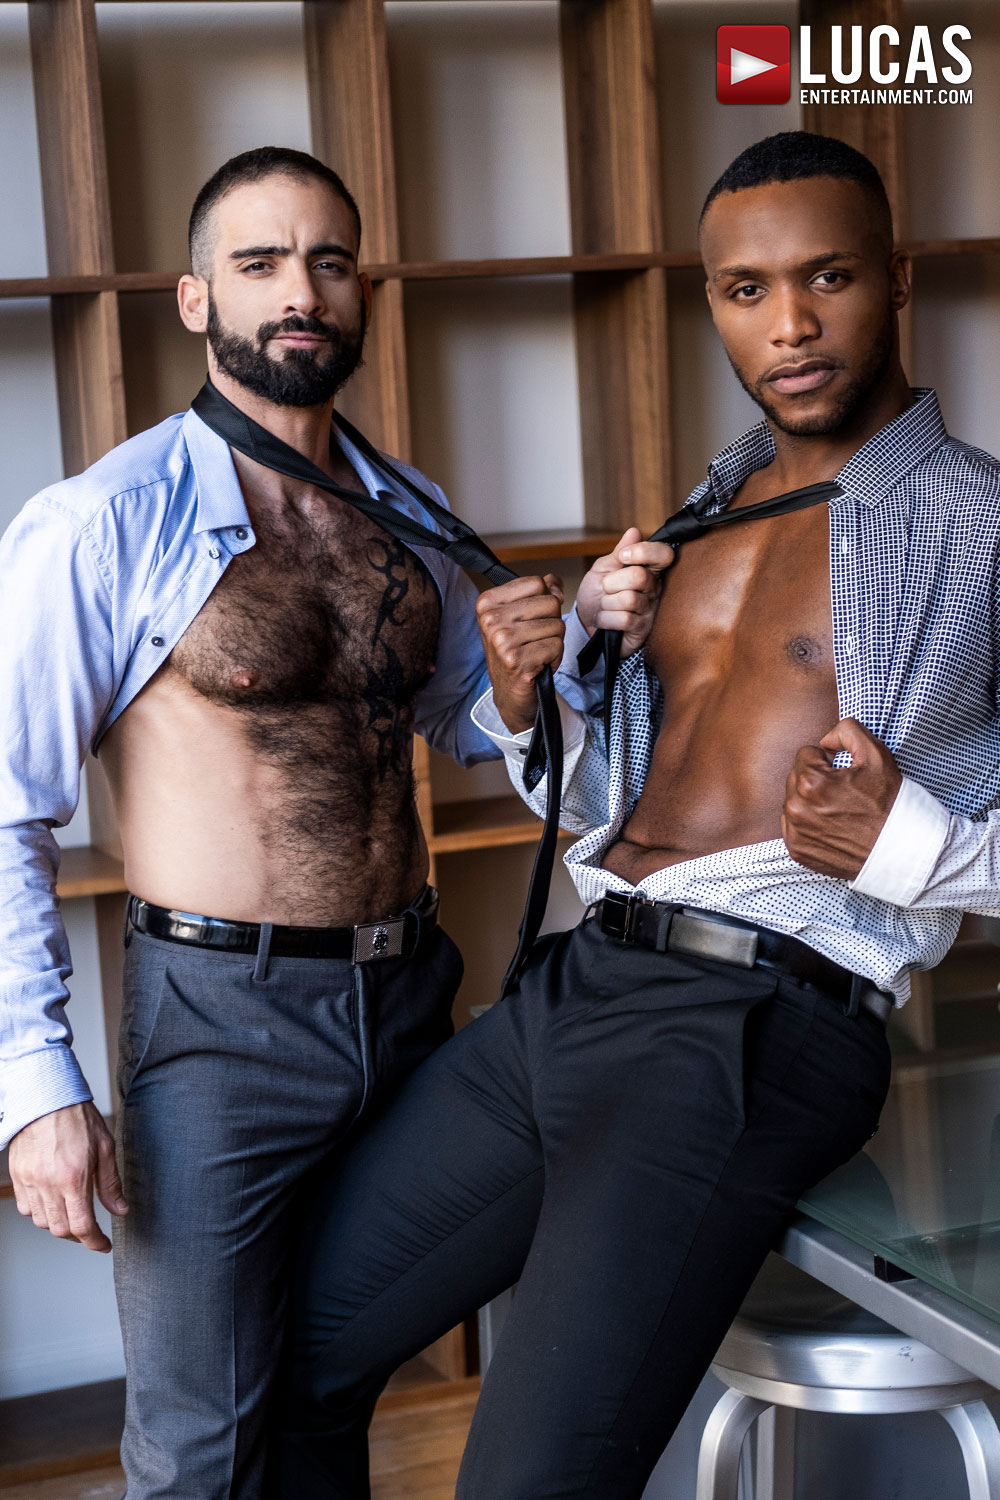 Edji Da Silva And Andre Donovan Cuckold Dakota Payne - Gay Movies - Lucas Entertainment